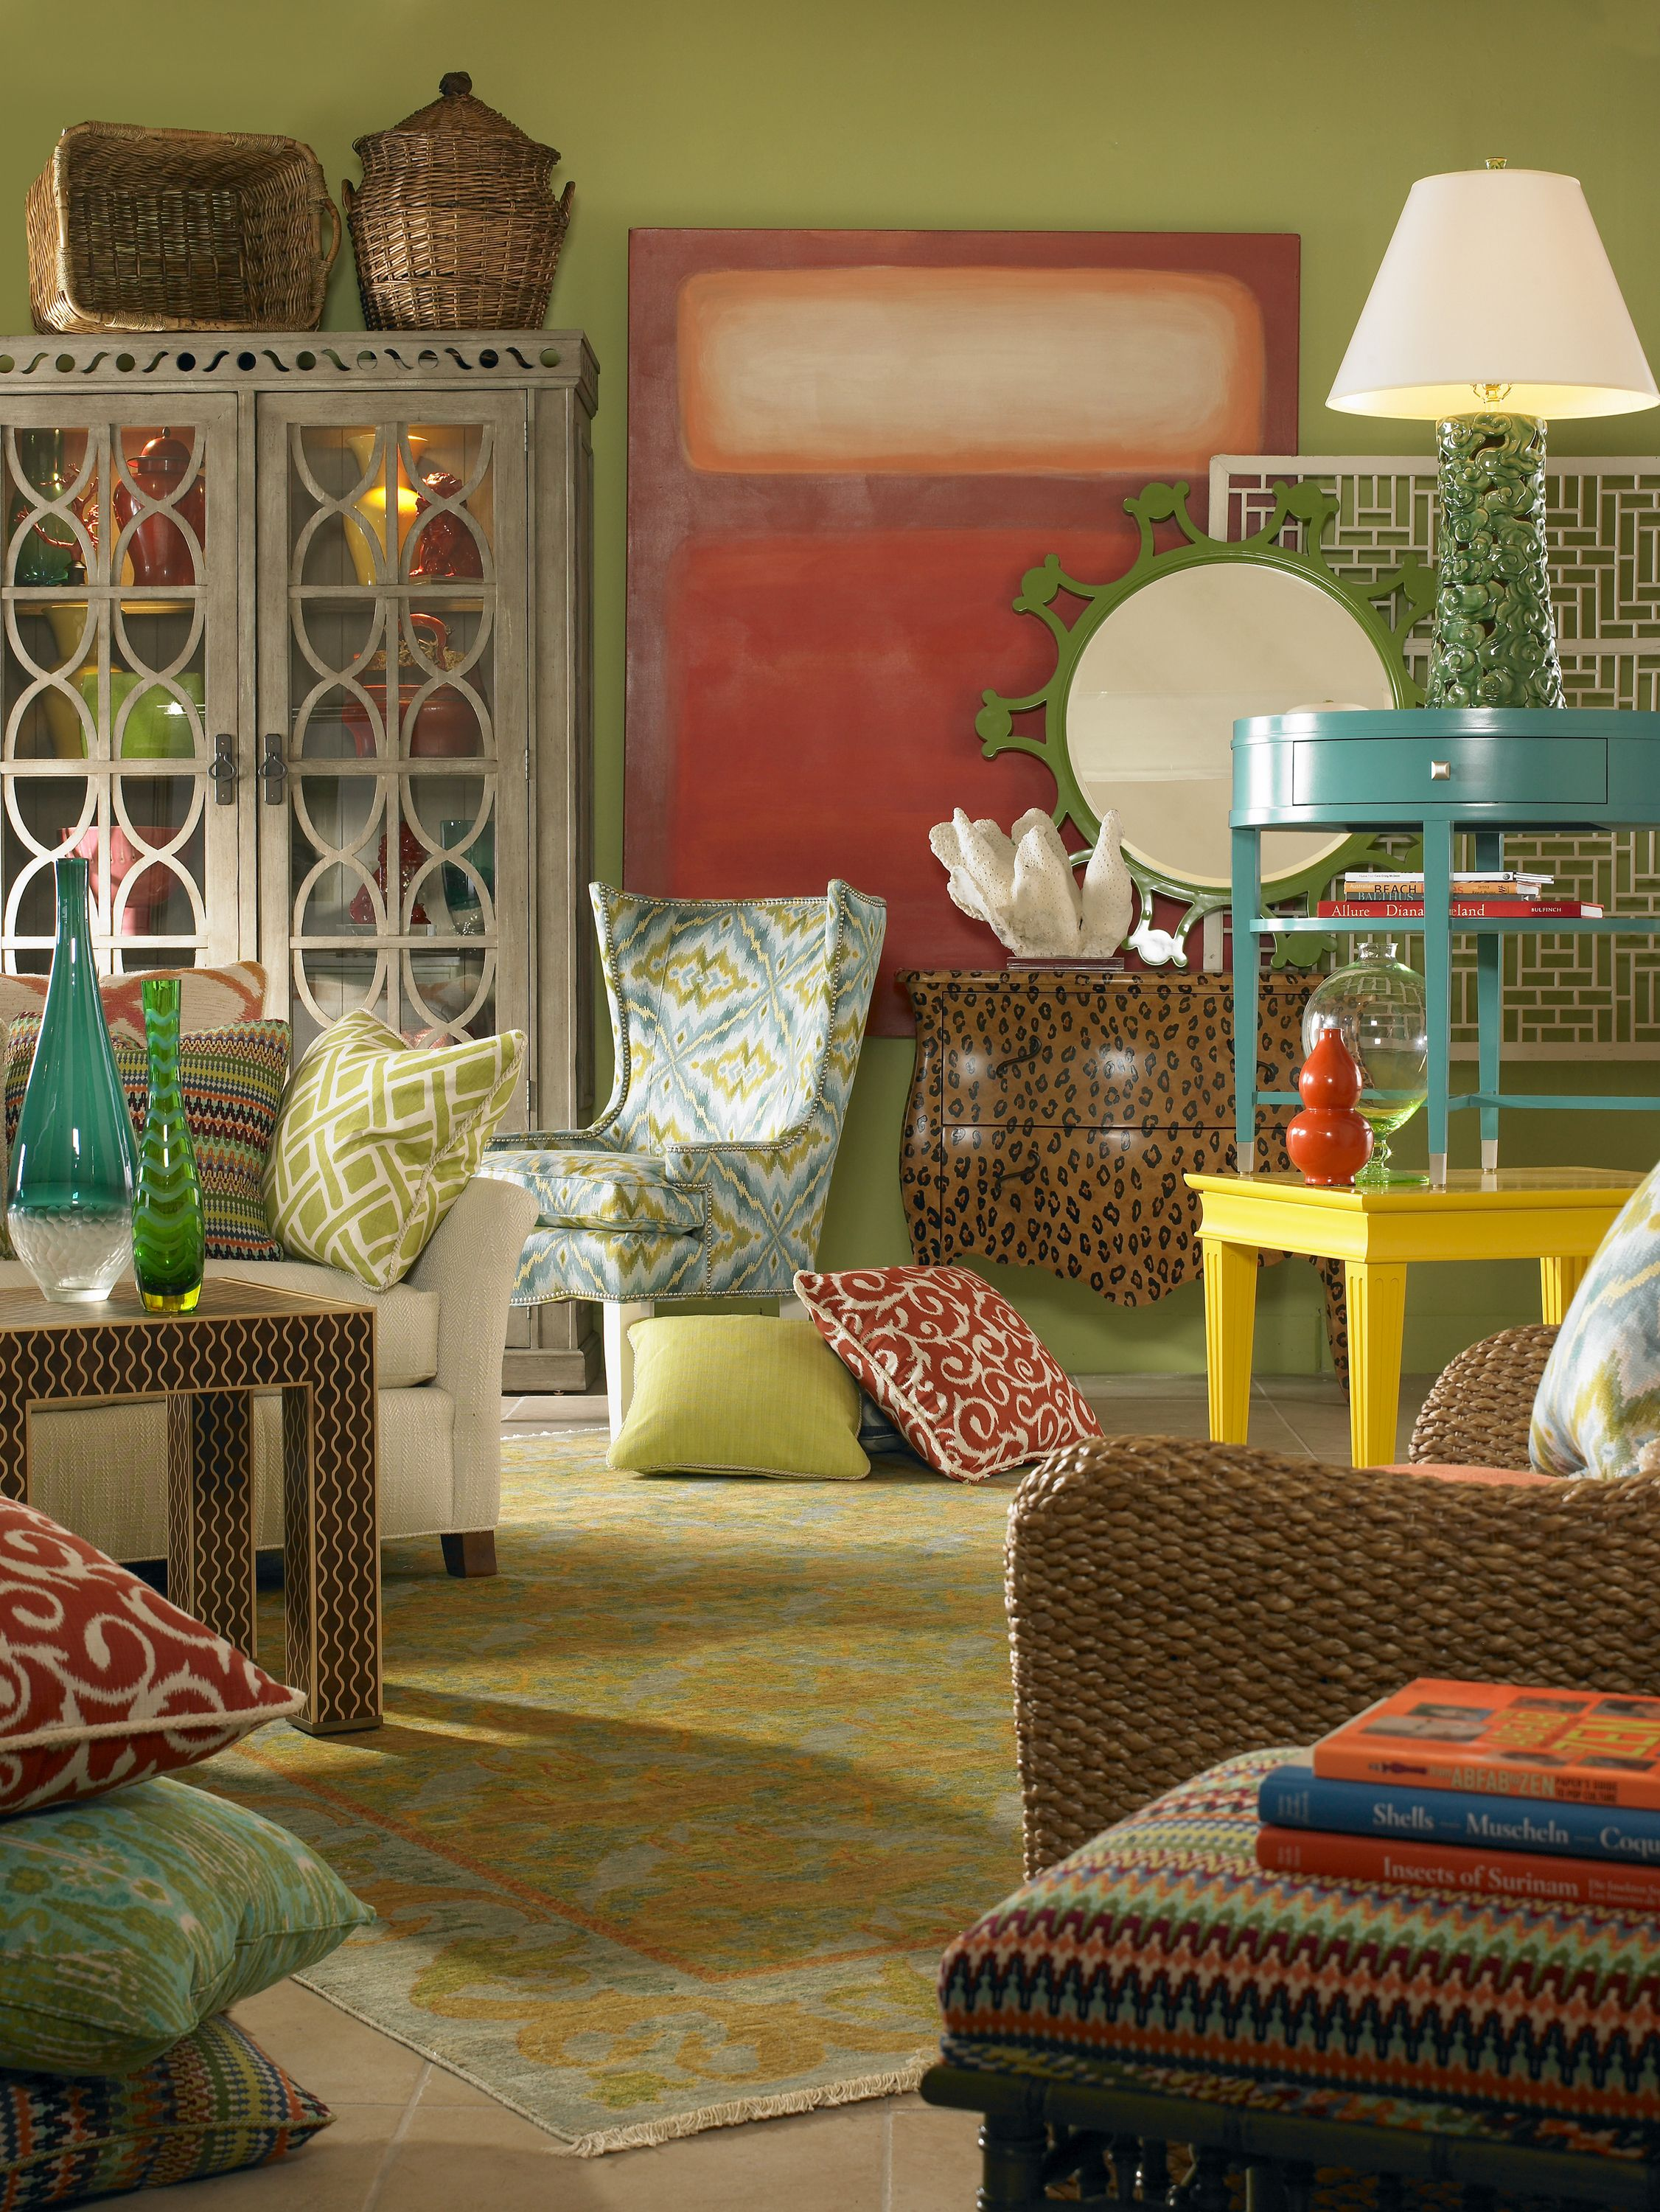 so many ideas...mirror, art, pillows, deco cabinet, side tables, etc.! #house beautiful#dreamlivingroom